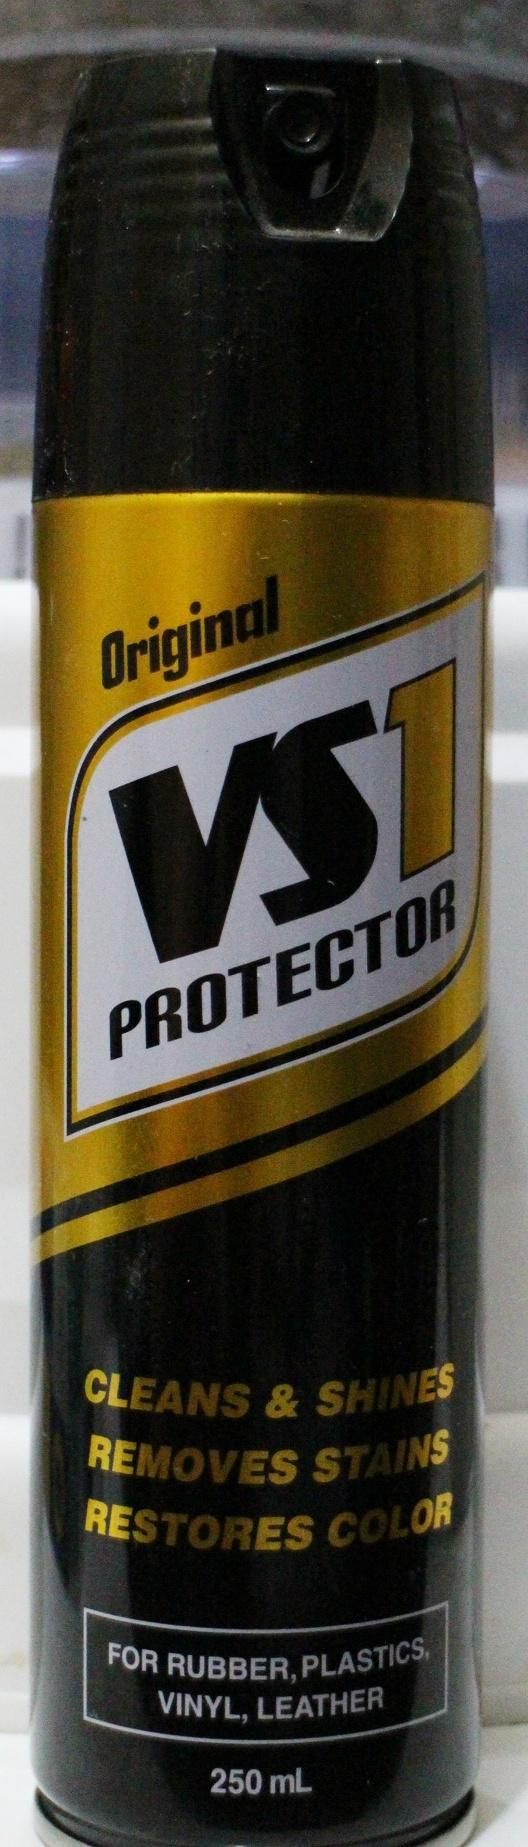 Original Vs1 Protector (250ml) By Jca Motorshop.